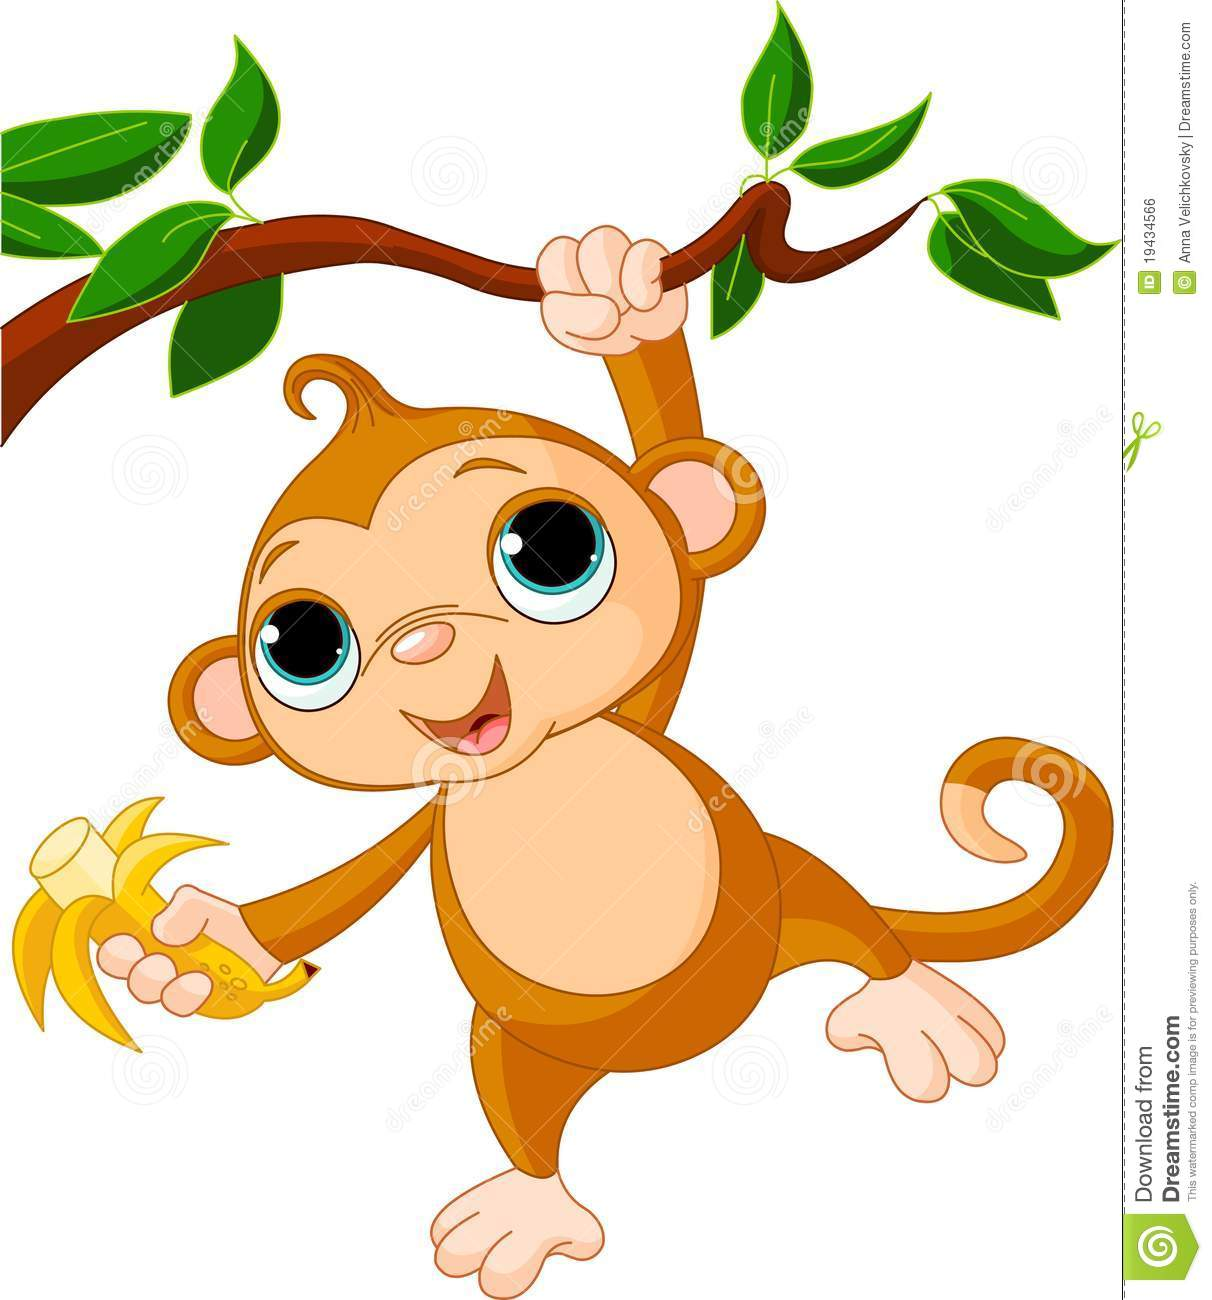 Monkey In A Tree Clipart